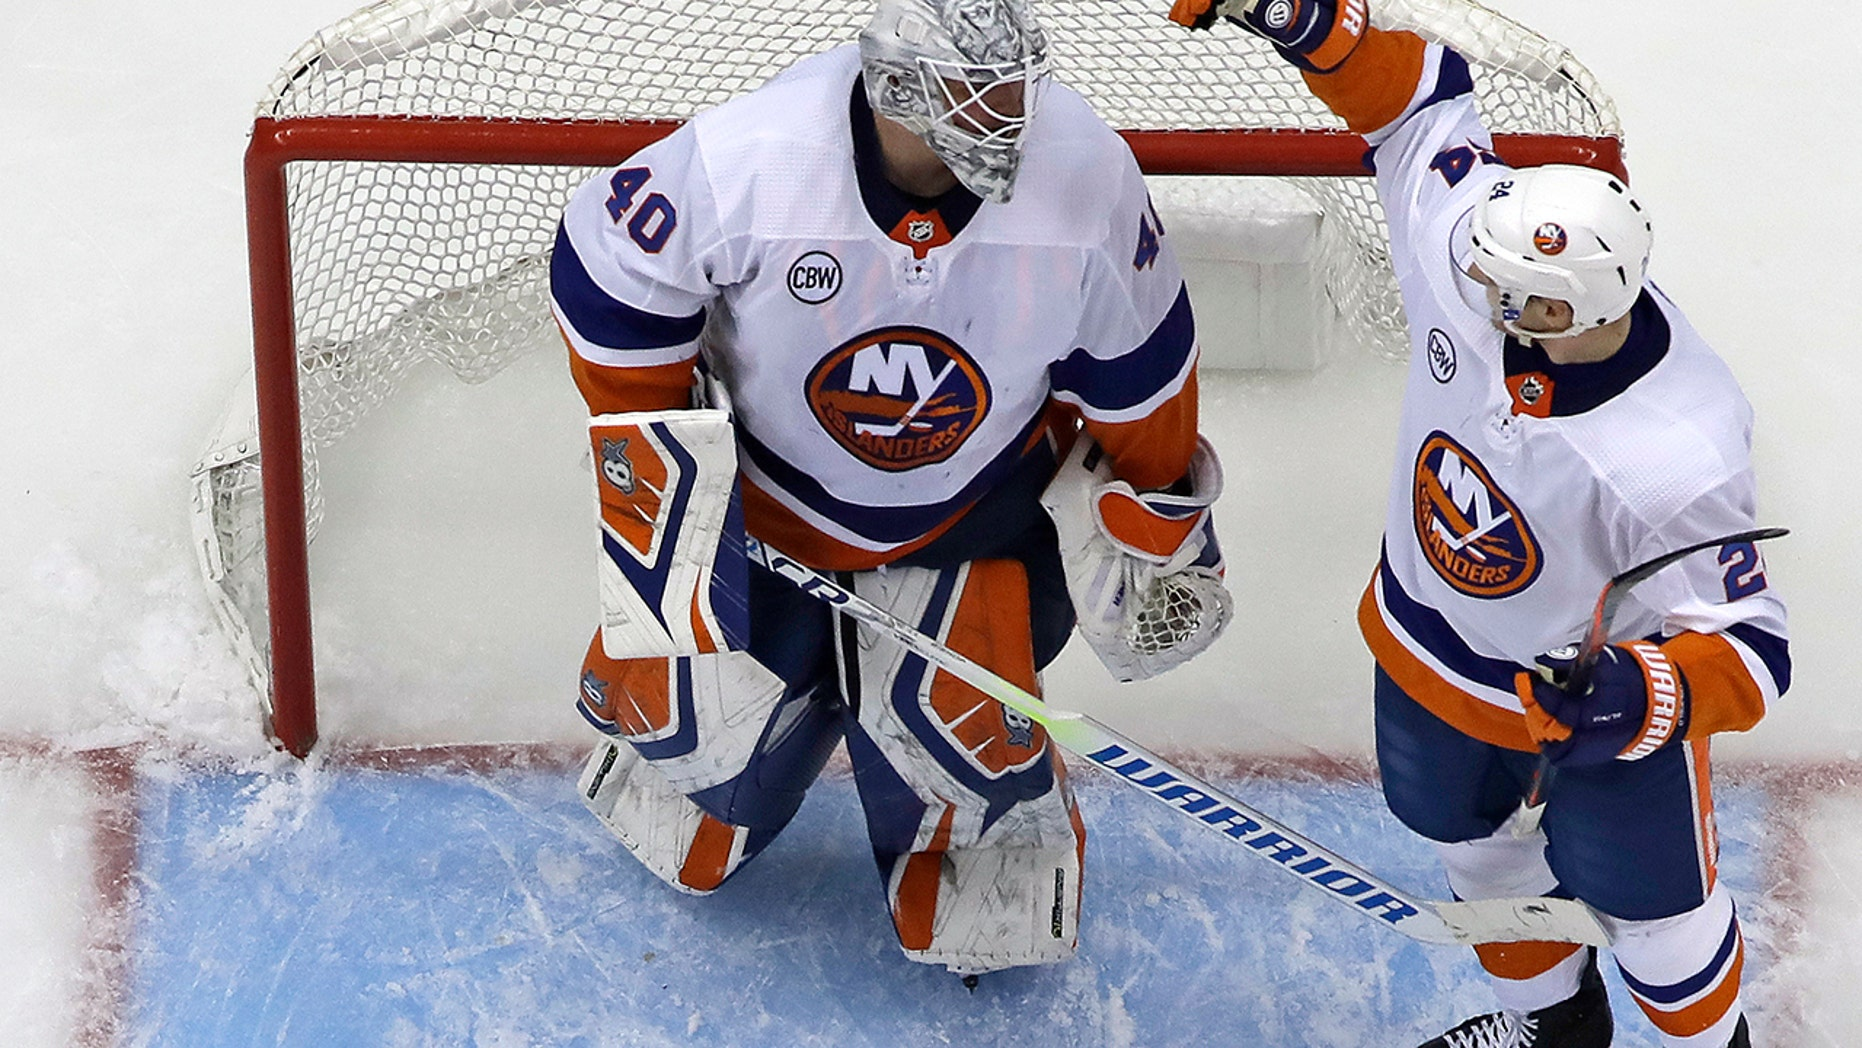 New York Islanders goaltender Robin Lehner, left, celebrates with Scott Mayfield (24) after a win over the Pittsburgh Penguins in Game 3 of an NHL first-round hockey playoff series in Pittsburgh, Sunday, April 14, 2019. (AP Photo/Gene J. Puskar)